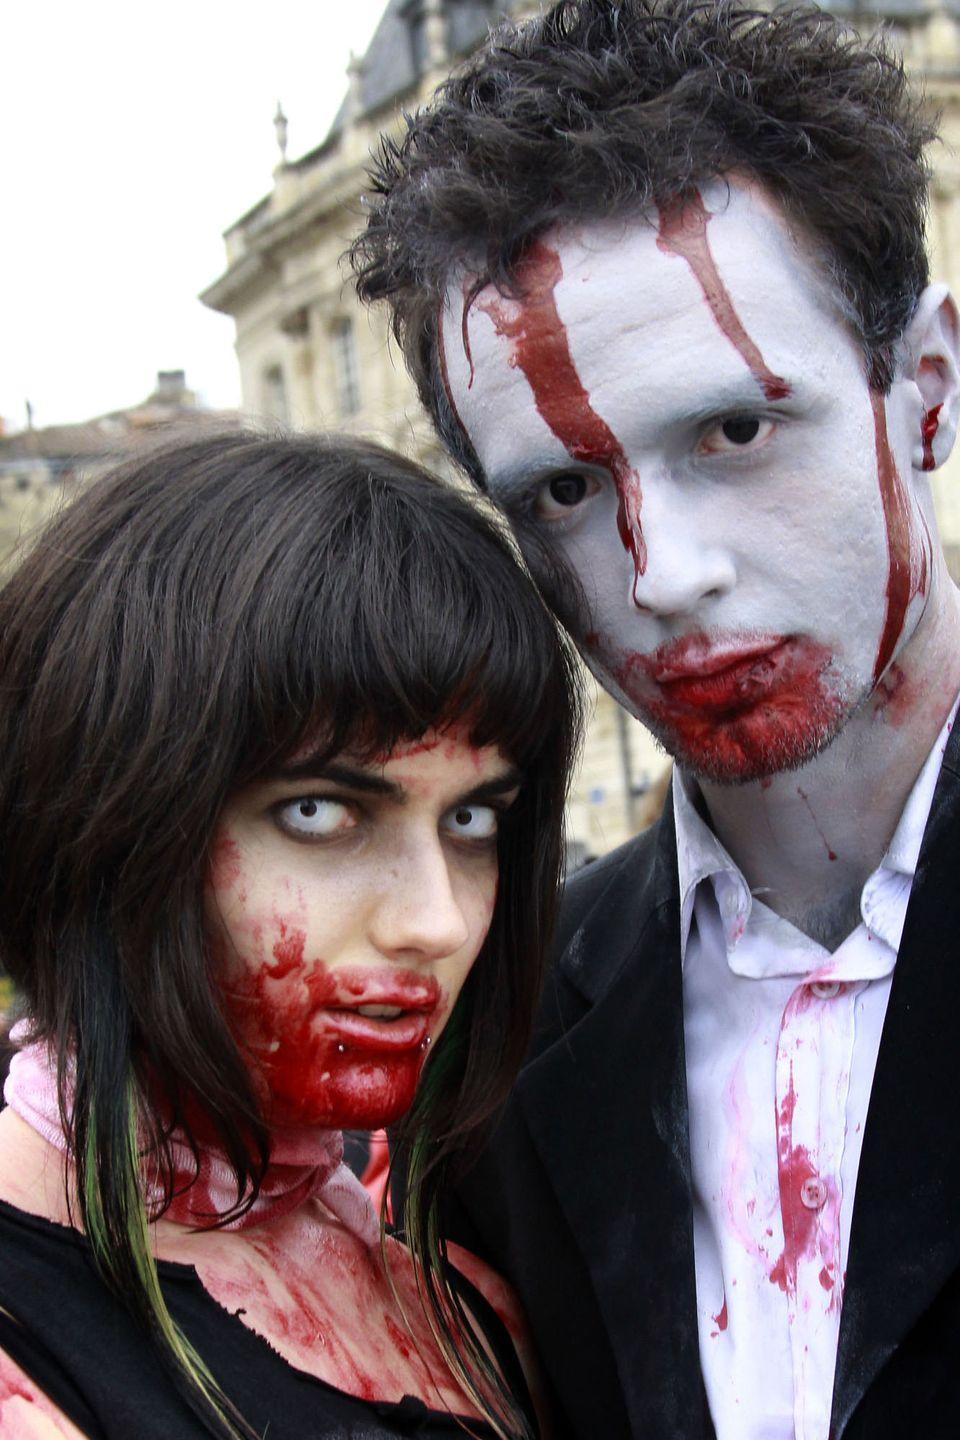 """<p>Turn yourselves into <em>The Walking Dead</em> extras with a little makeup and lots of fake blood (which you can buy or <a href=""""https://www.goodhousekeeping.com/holidays/halloween-ideas/how-to/a35075/how-to-make-fake-blood/"""" rel=""""nofollow noopener"""" target=""""_blank"""" data-ylk=""""slk:make at home"""" class=""""link rapid-noclick-resp"""">make at home</a>). Then go the extra mile with colored contacts.</p><p><a class=""""link rapid-noclick-resp"""" href=""""https://www.amazon.com/dp/B06XC7TVGT/?tag=syn-yahoo-20&ascsubtag=%5Bartid%7C10055.g.2625%5Bsrc%7Cyahoo-us"""" rel=""""nofollow noopener"""" target=""""_blank"""" data-ylk=""""slk:SHOP FAKE BLOOD"""">SHOP FAKE BLOOD</a></p>"""